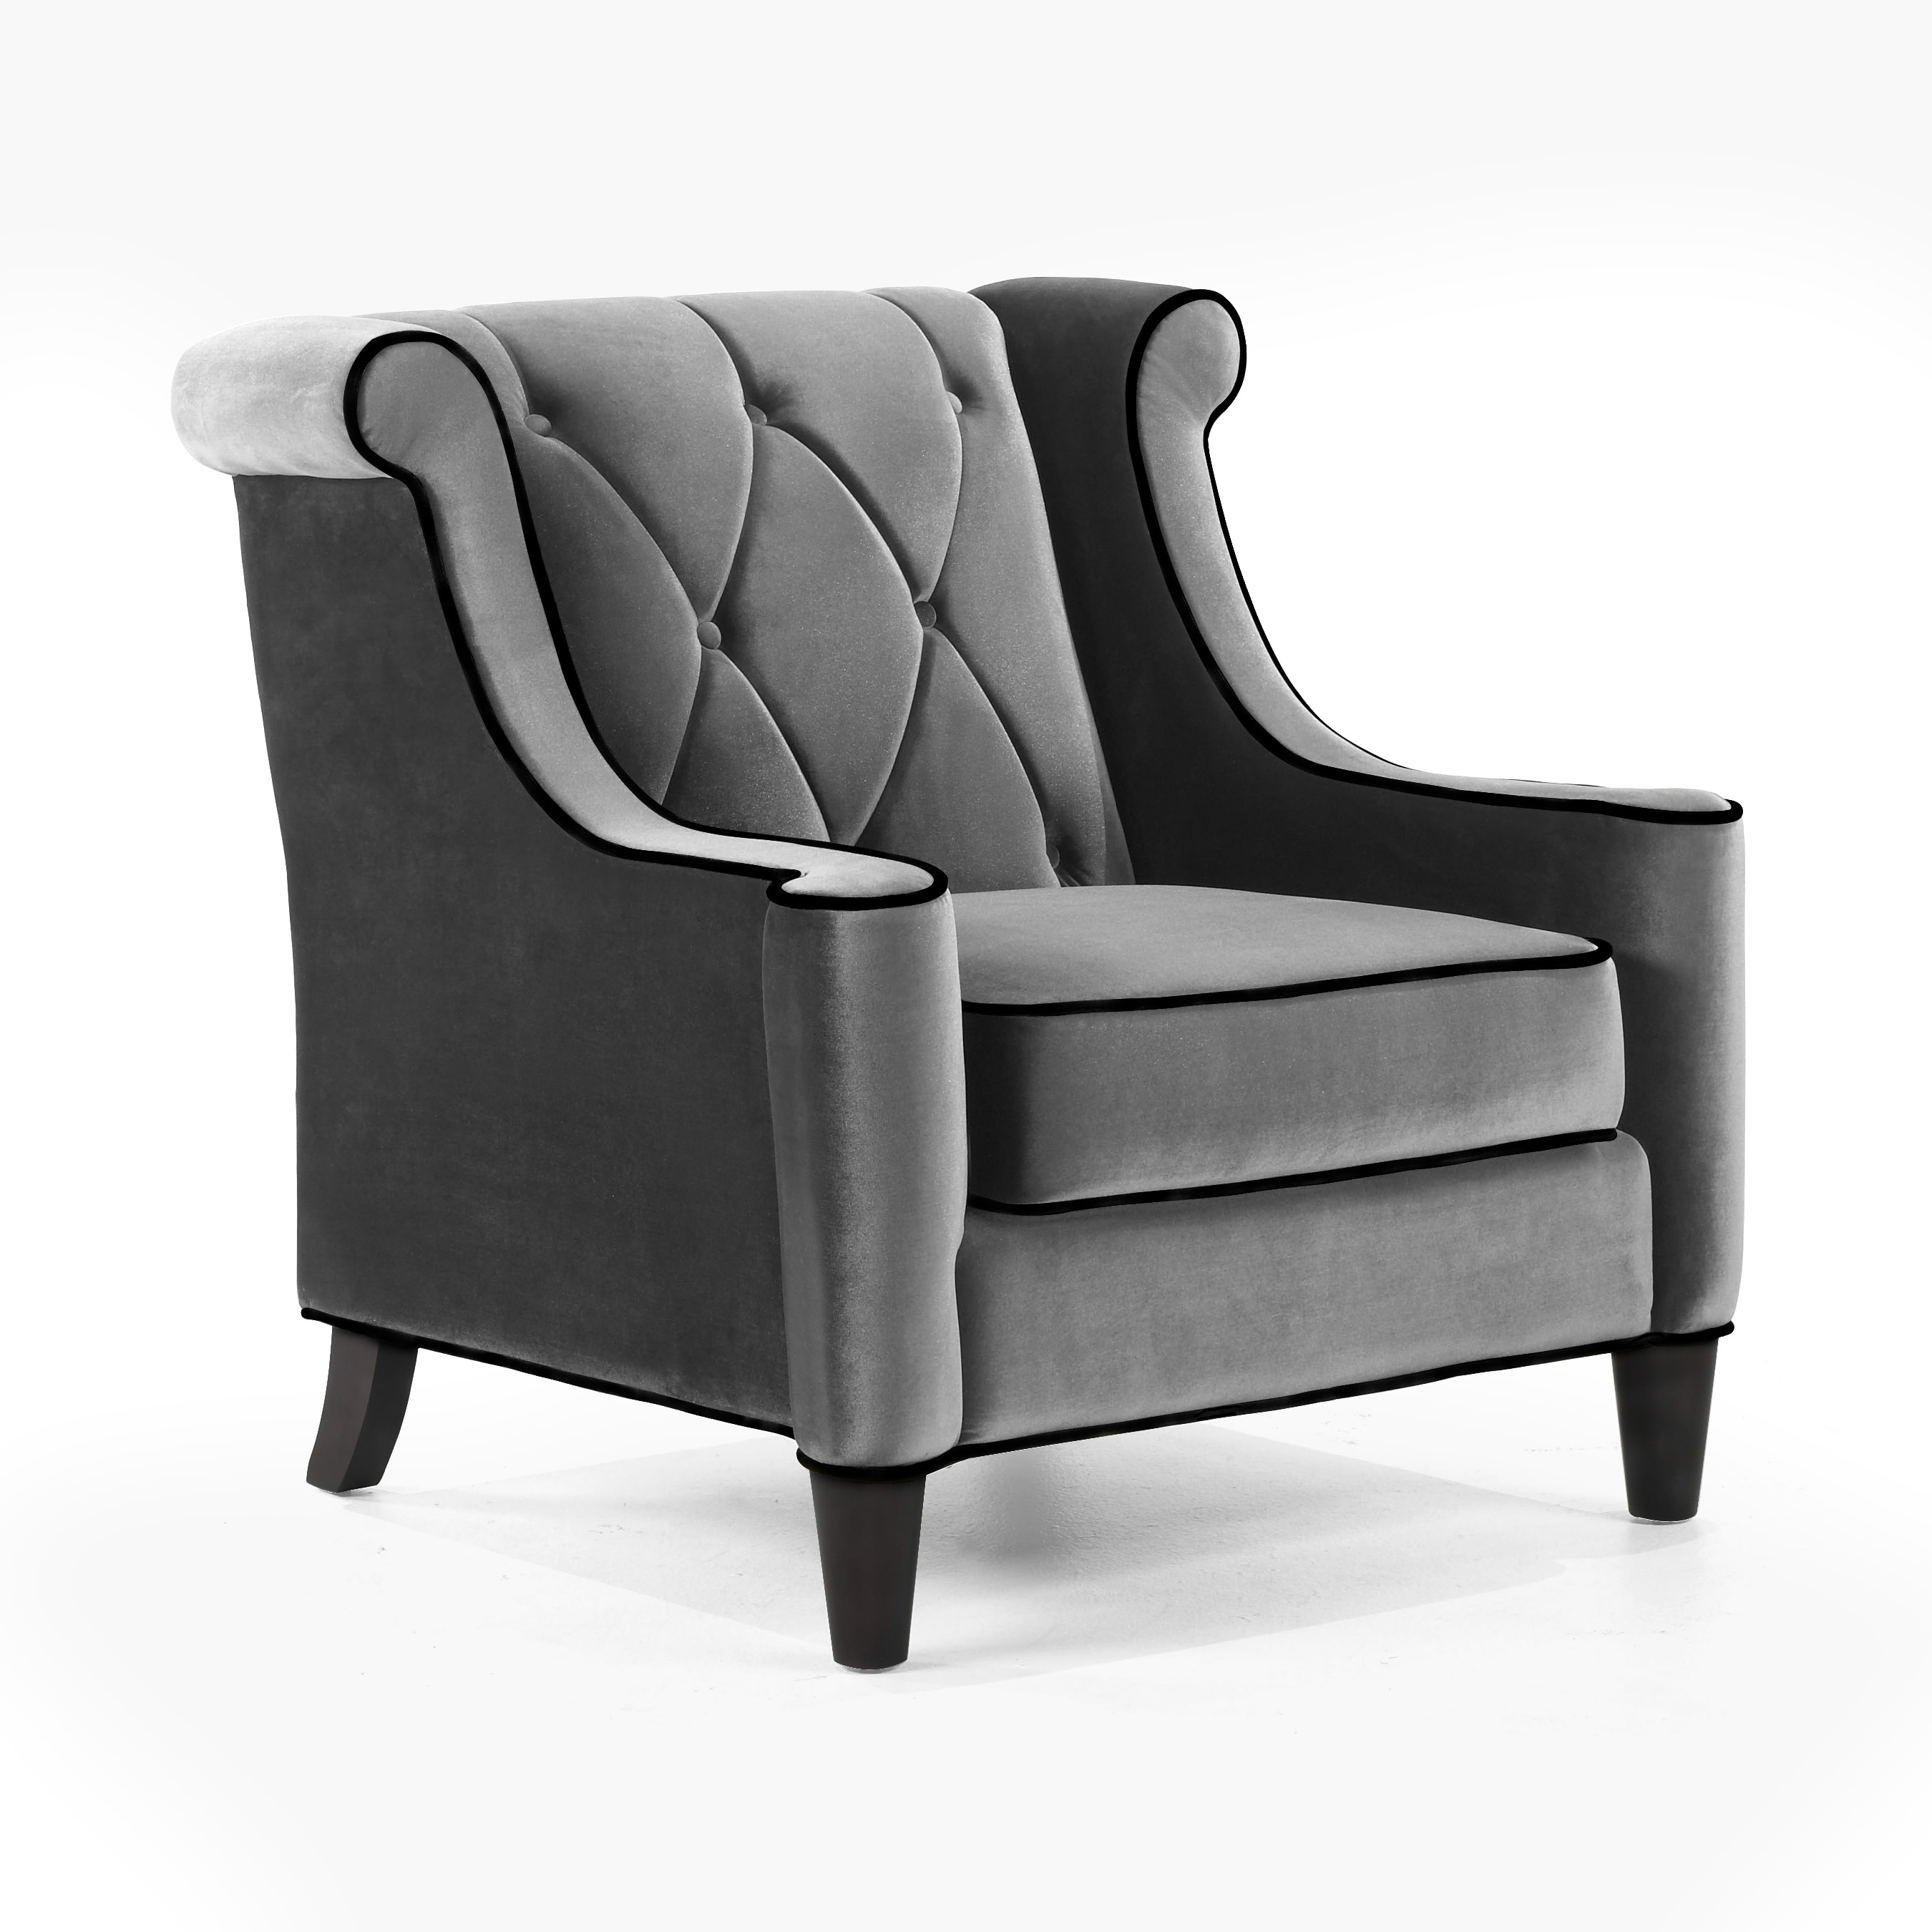 Magnificent Accent Chair For Home Furniture Ideas With Accent Chairs With Arms And Accent Chairs For Living Room